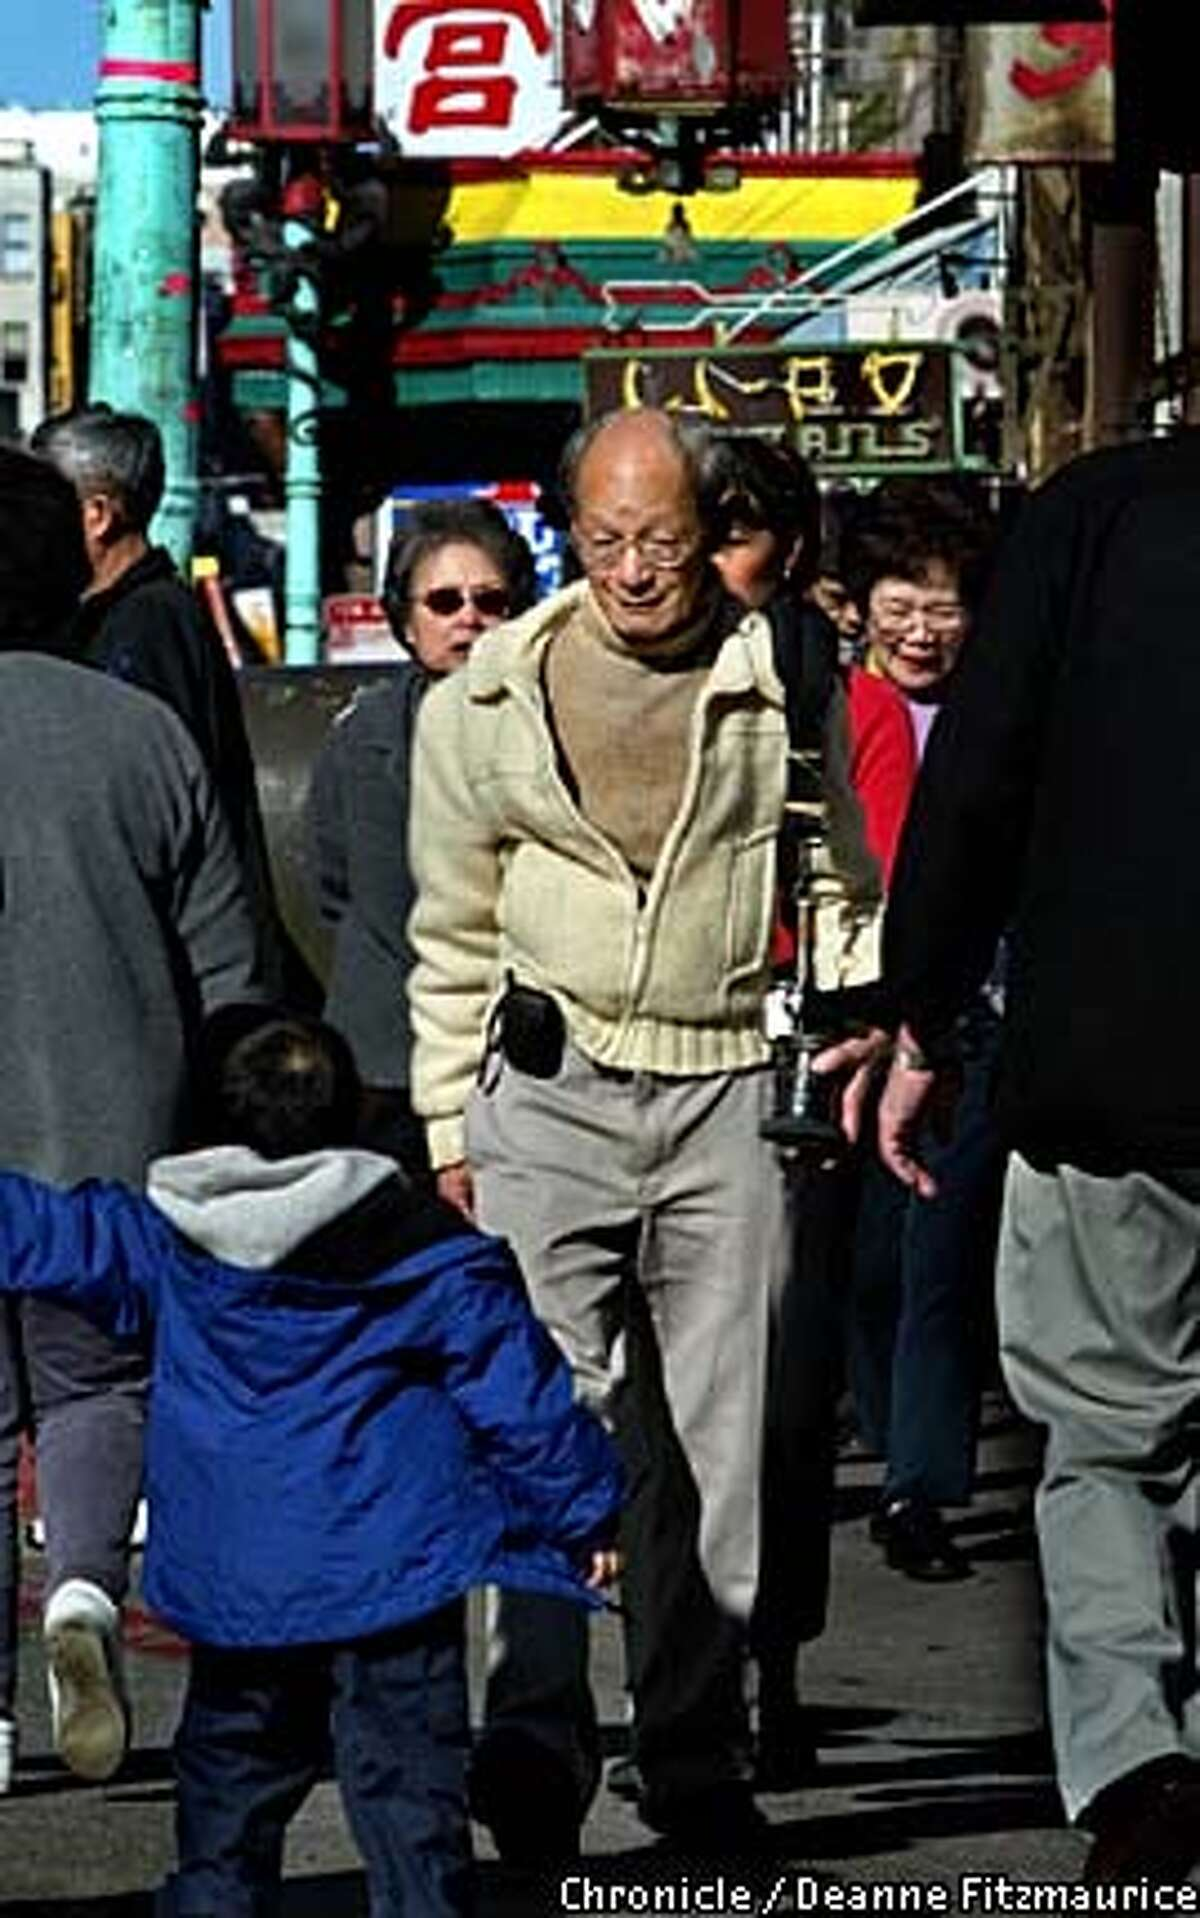 Benjamen Chinn smiles at a young boy as he walks through Chinatown with his camera over his shoulder. Chronicle photo by Deanne Fitzmaurice